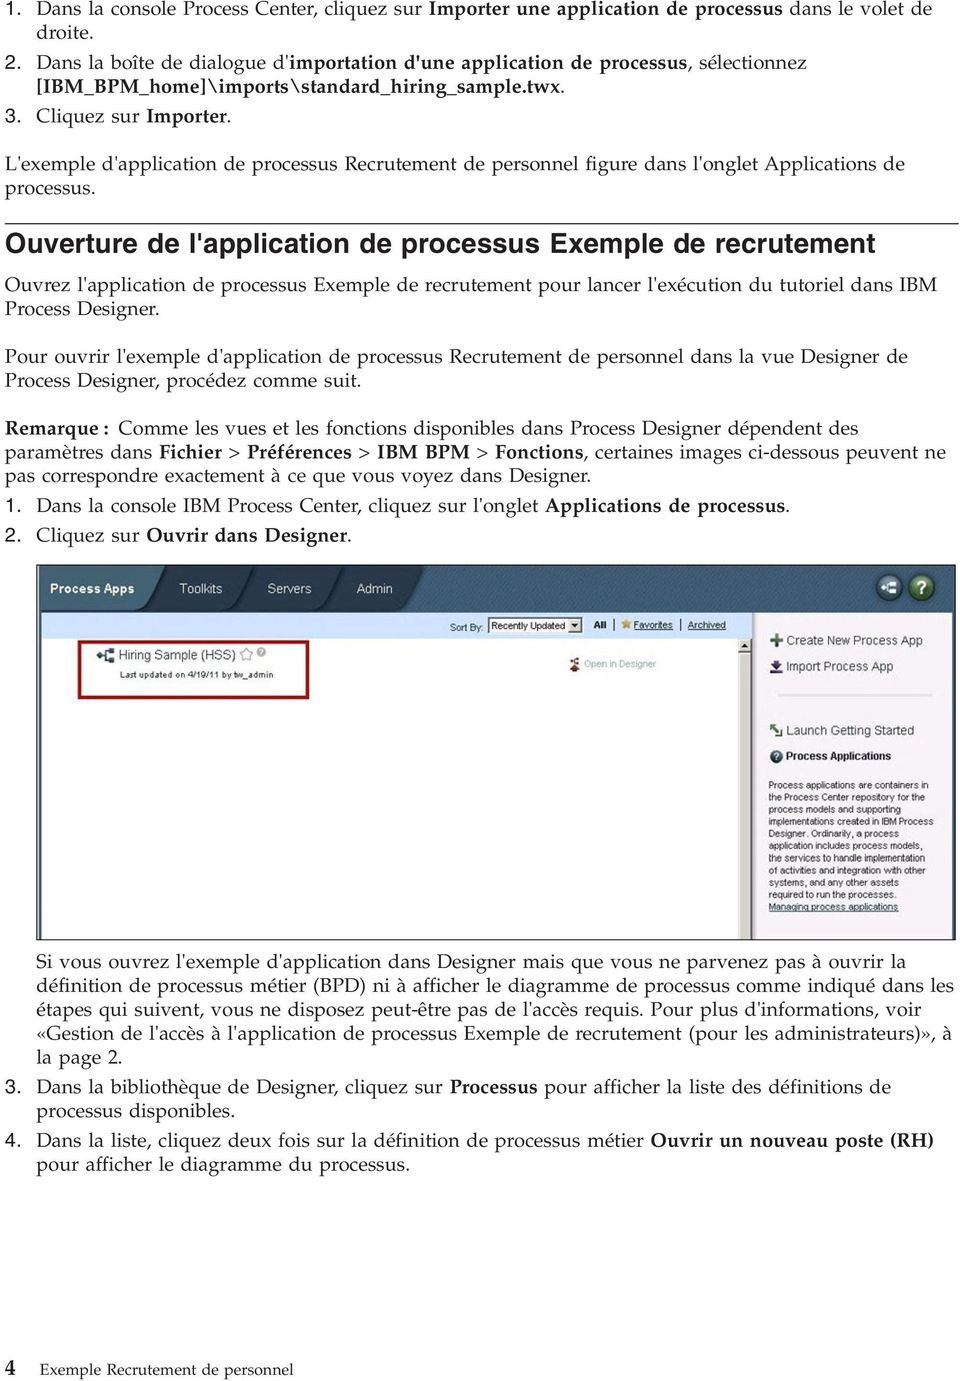 L'exemple d'application de processus Recrutement de personnel figure dans l'onglet Applications de processus.